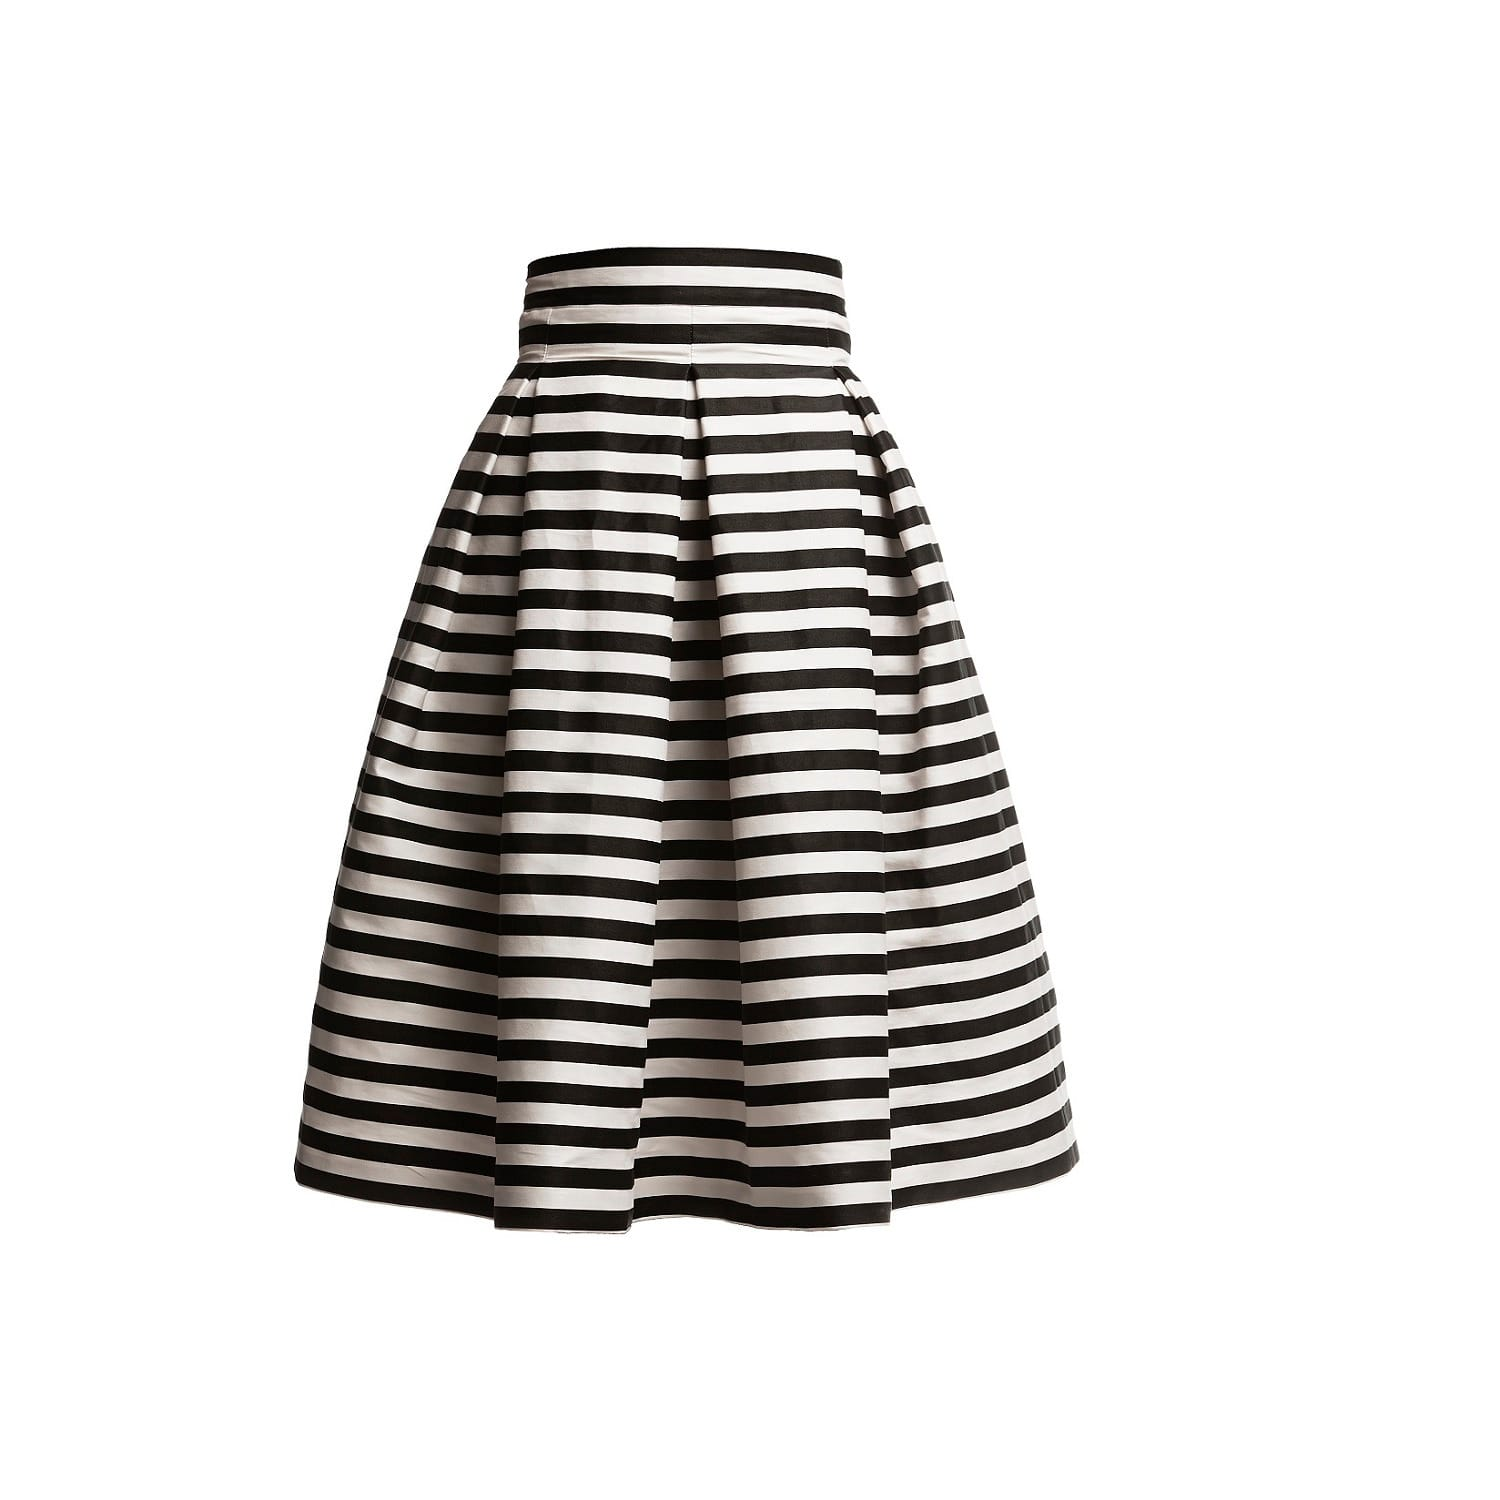 64991eddfc1f10 Black And White Striped Mini Skirt Outfits – DACC